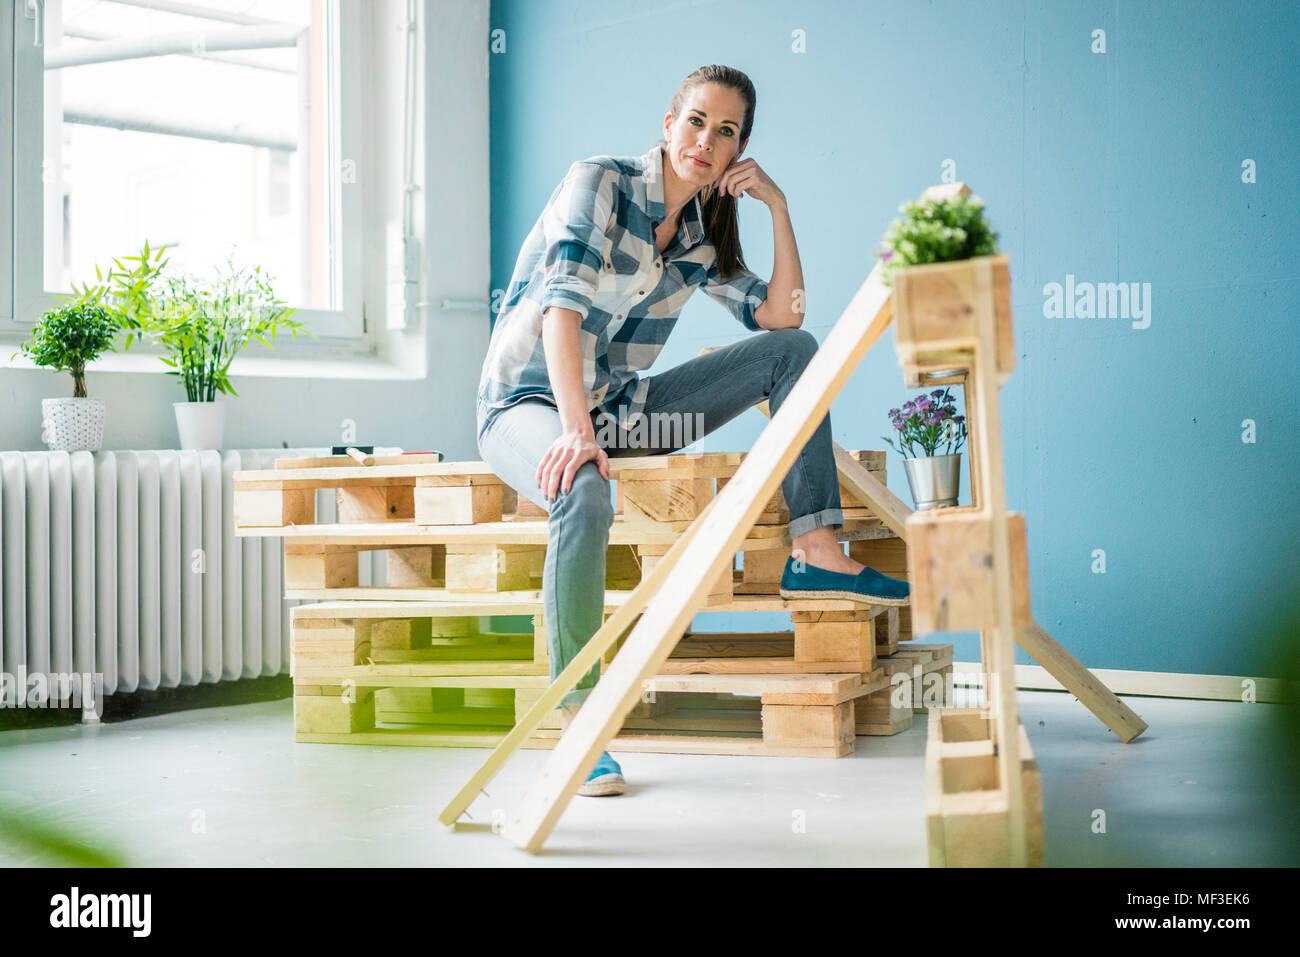 Beautiful woman refurbishing her home with pallets - Stock Image